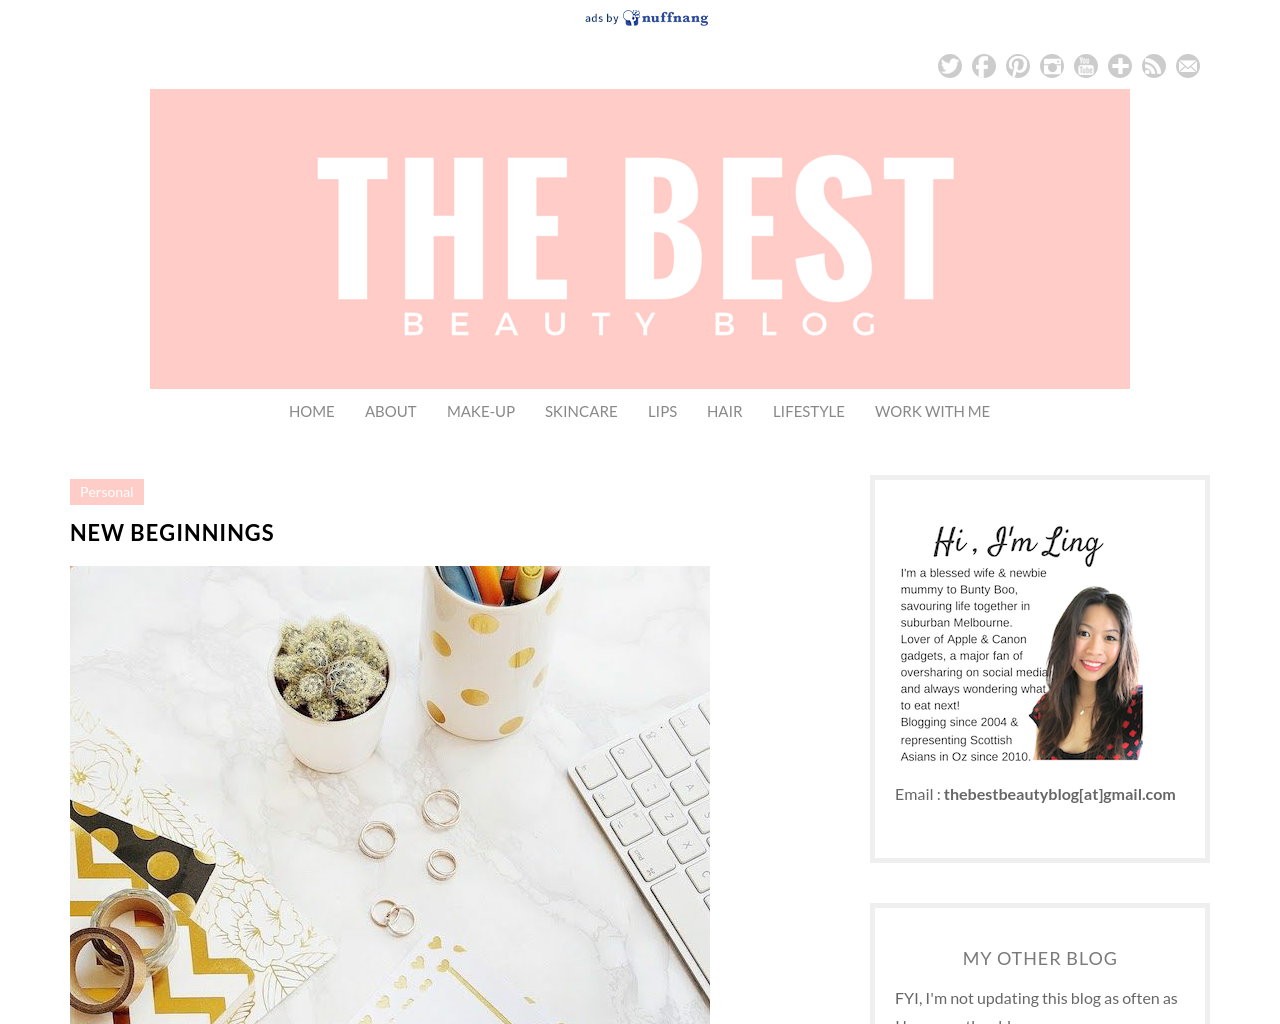 The-Best-Beauty-Blog-Advertising-Reviews-Pricing